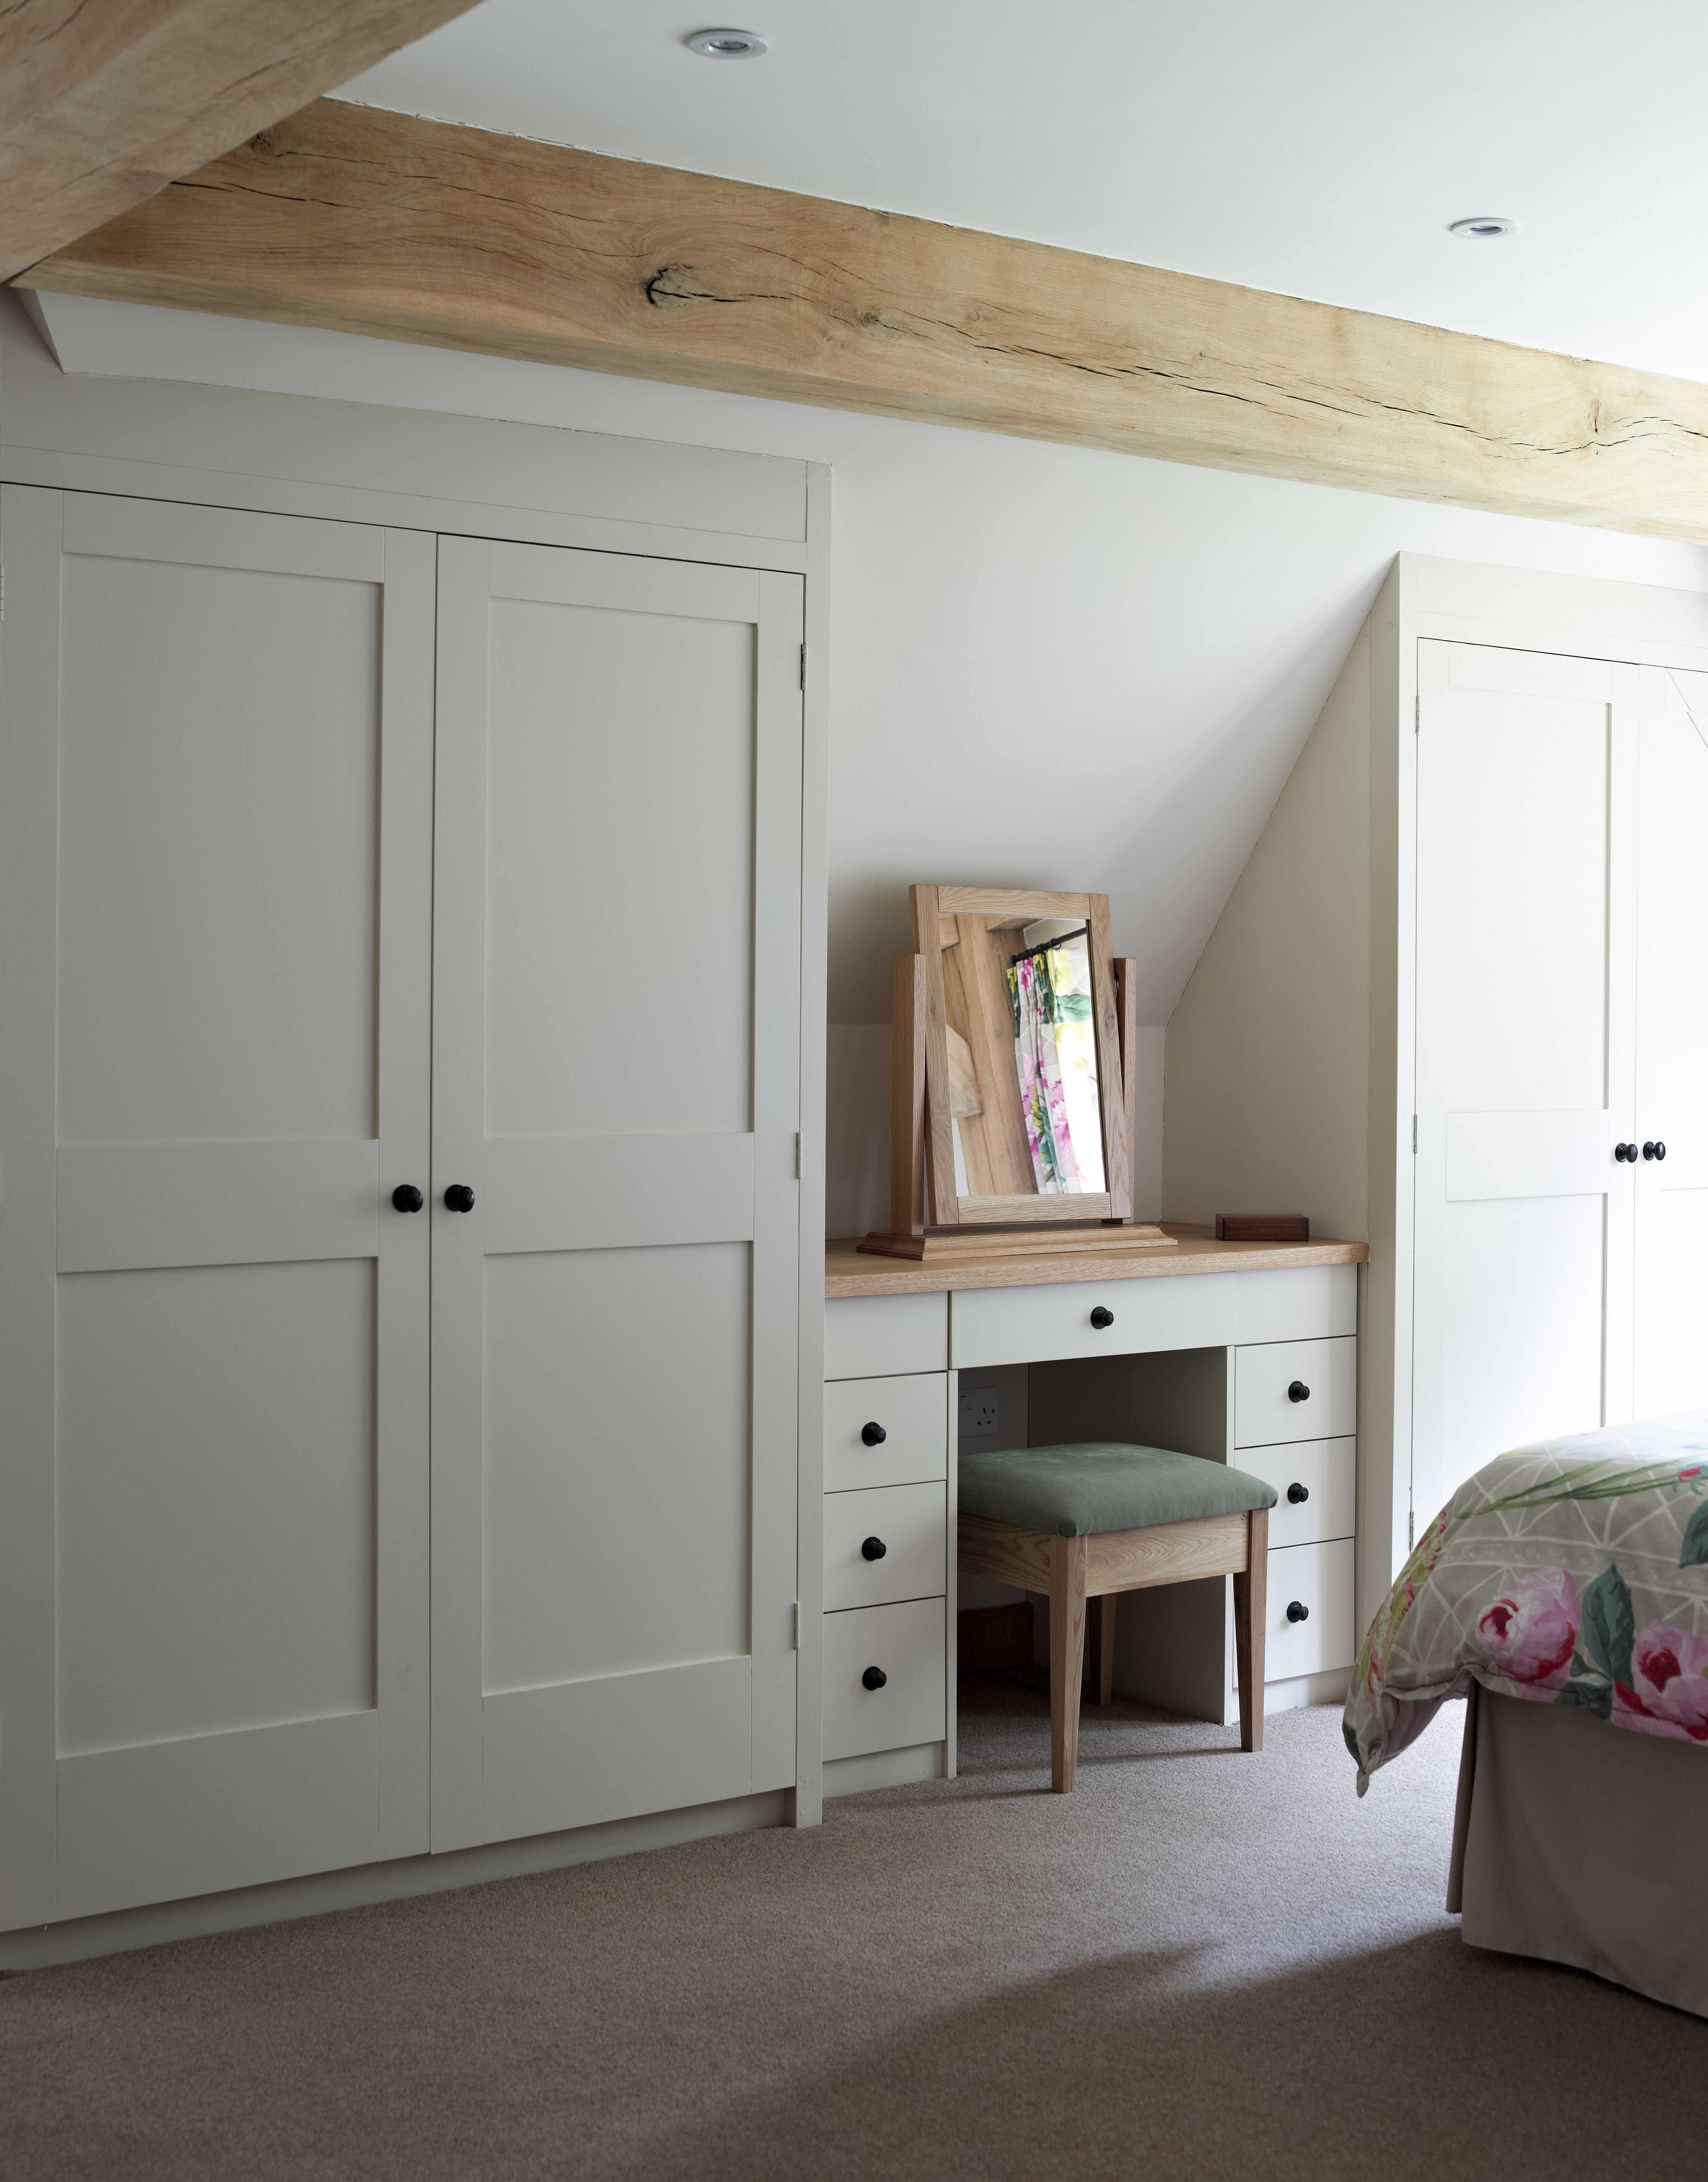 Fitted wardrobes border oak bedrooms pinterest for Bedroom ideas with built in wardrobes